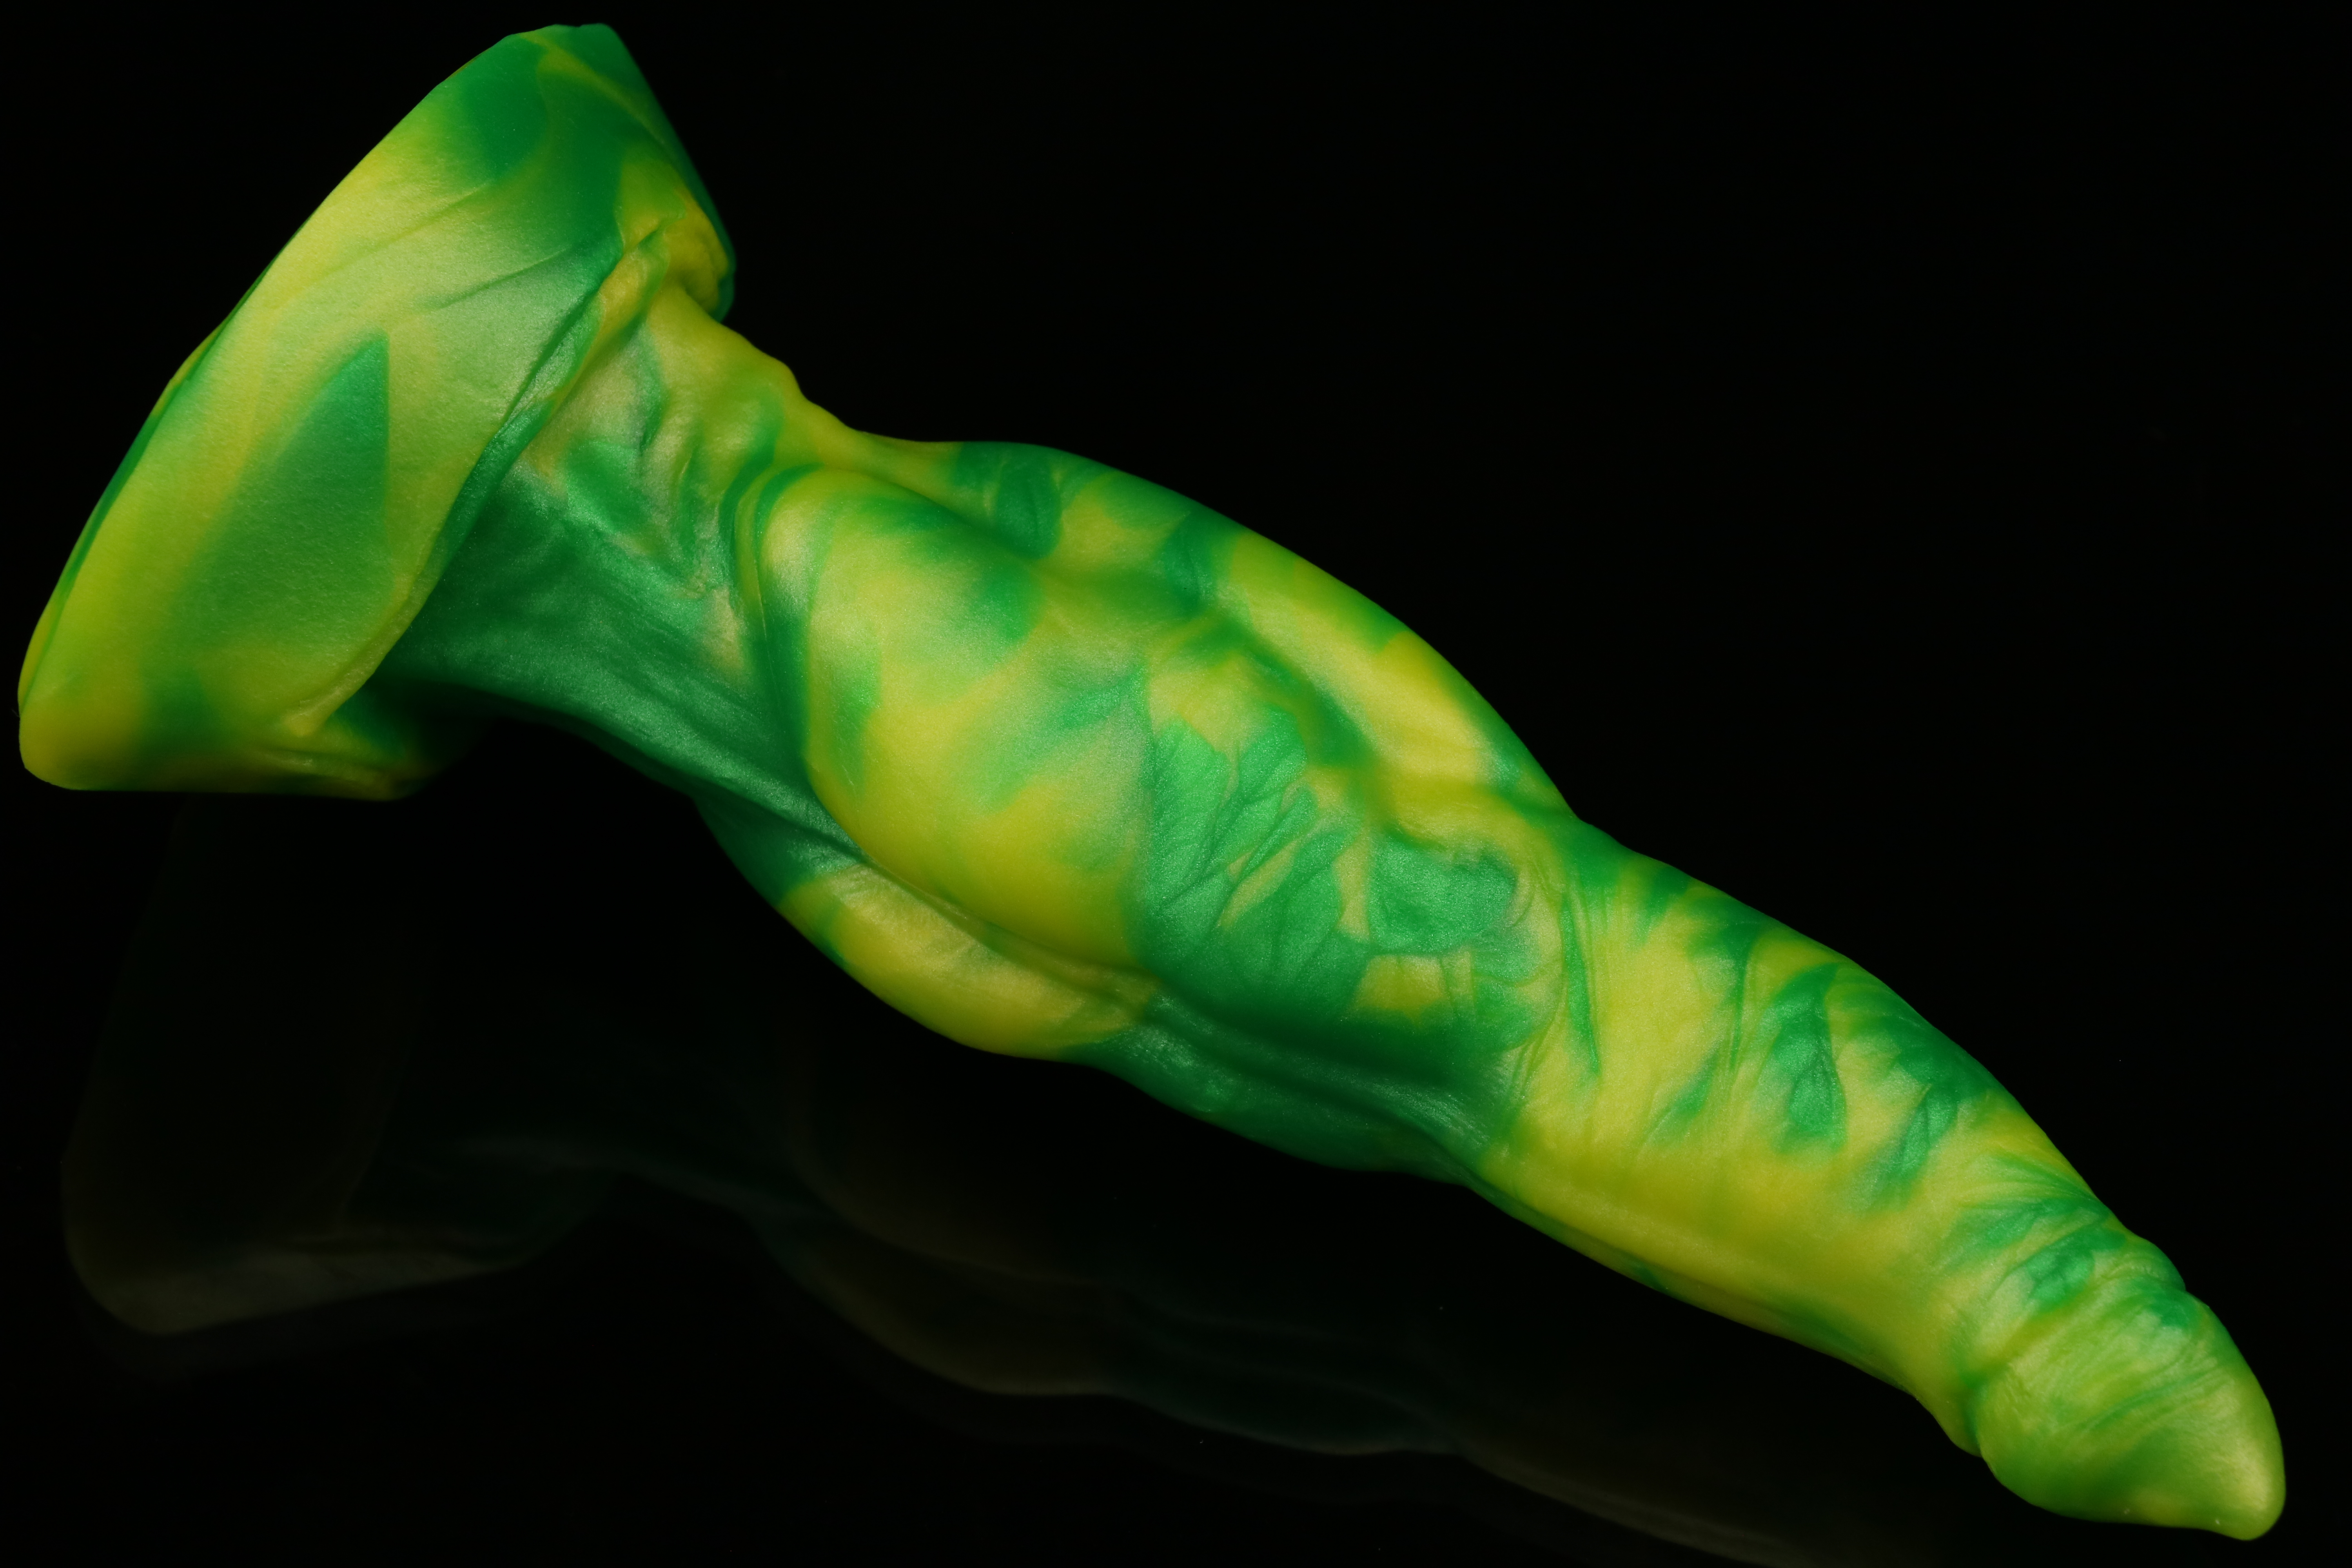 Bad dragon toy adult picture